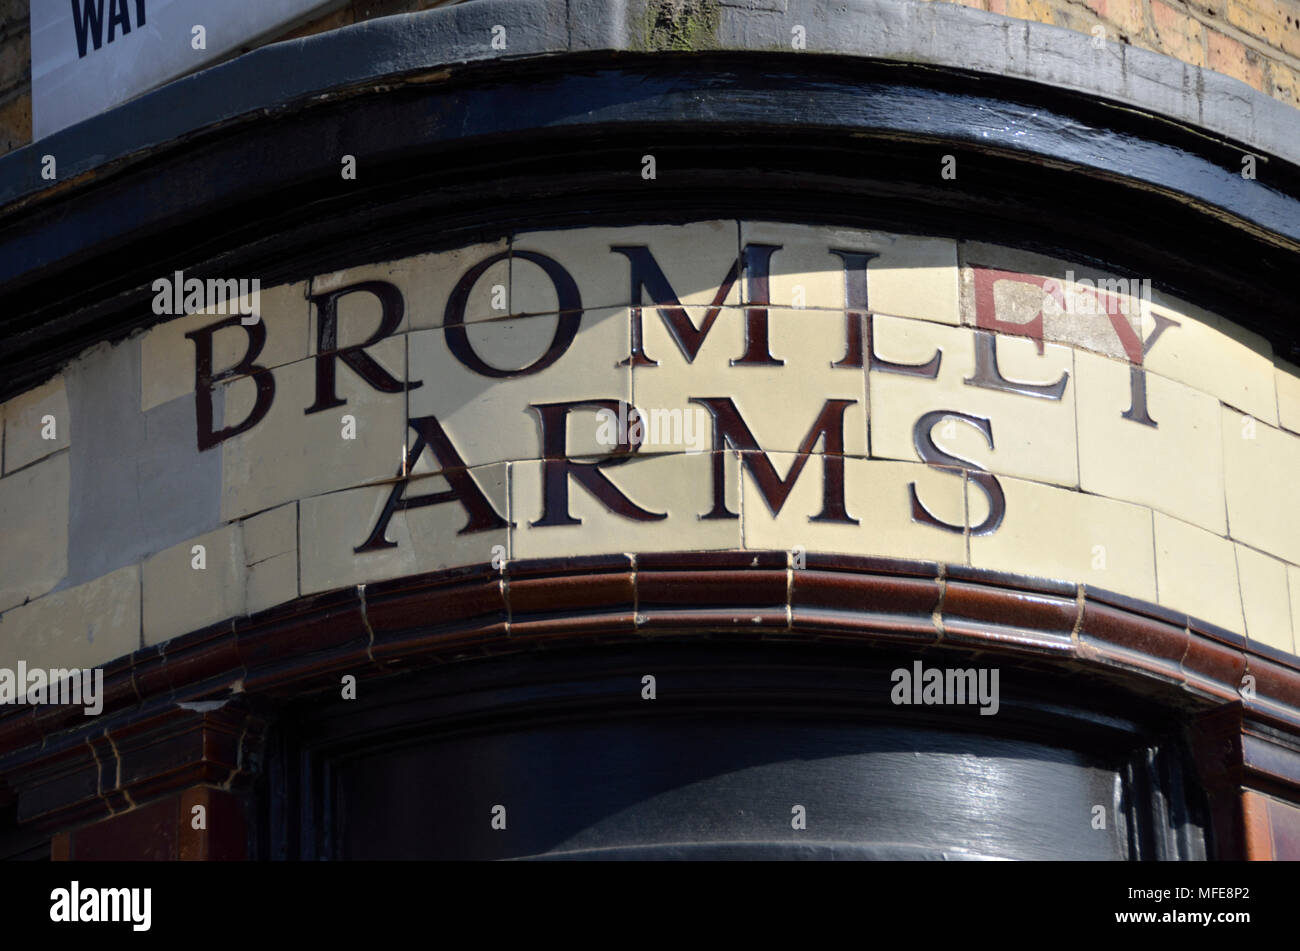 The forner Bromley Arms pub in Cleveland Street W1, Fitzrovia, London, UK. - Stock Image